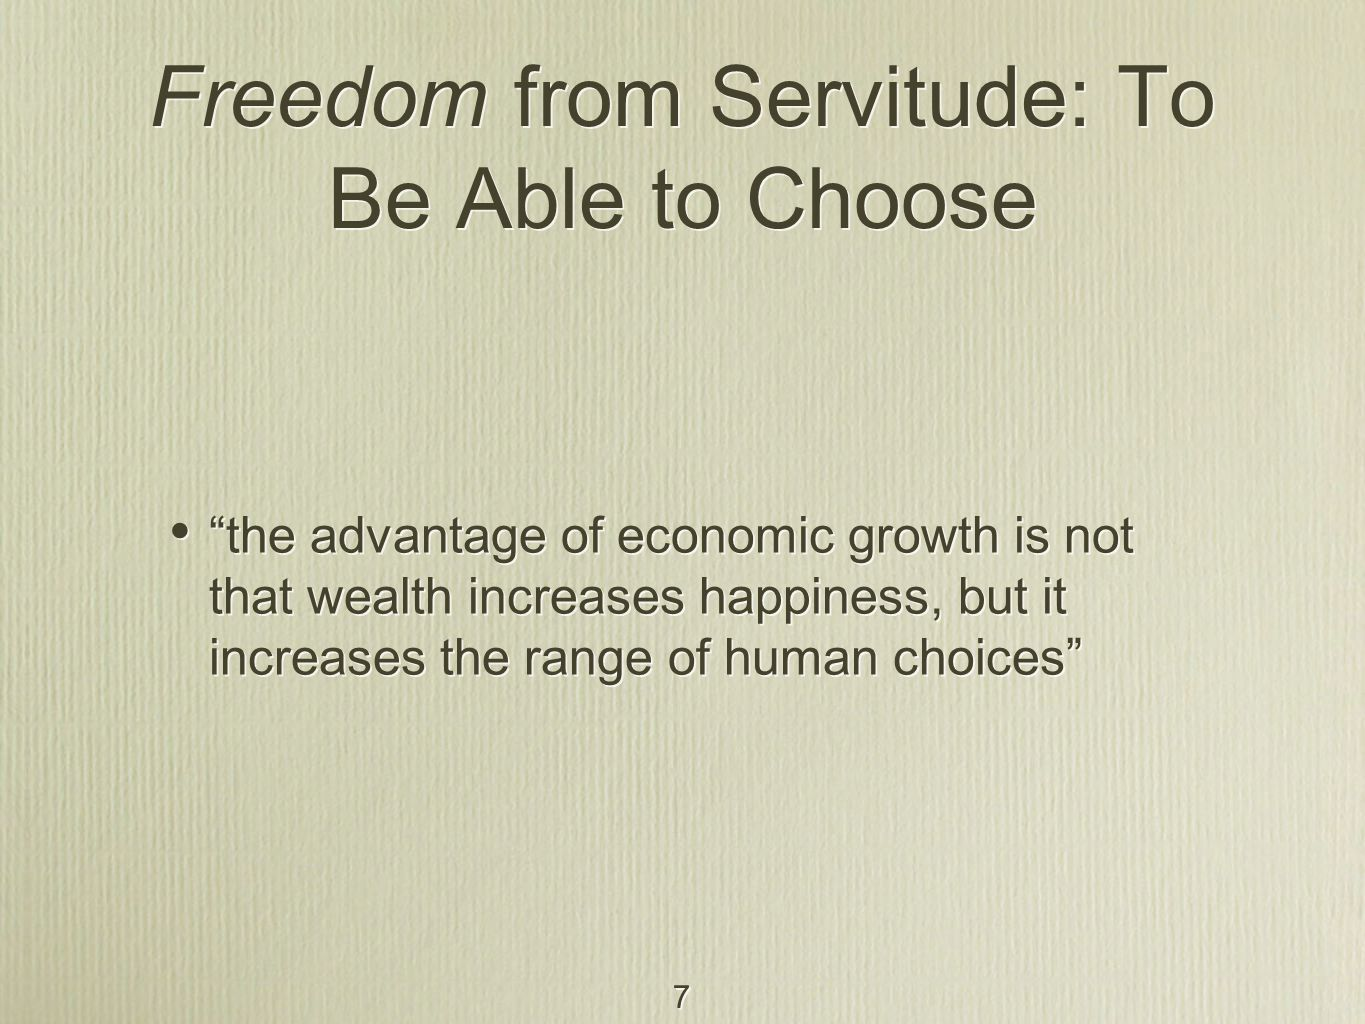 Freedom from Servitude: To Be Able to Choose